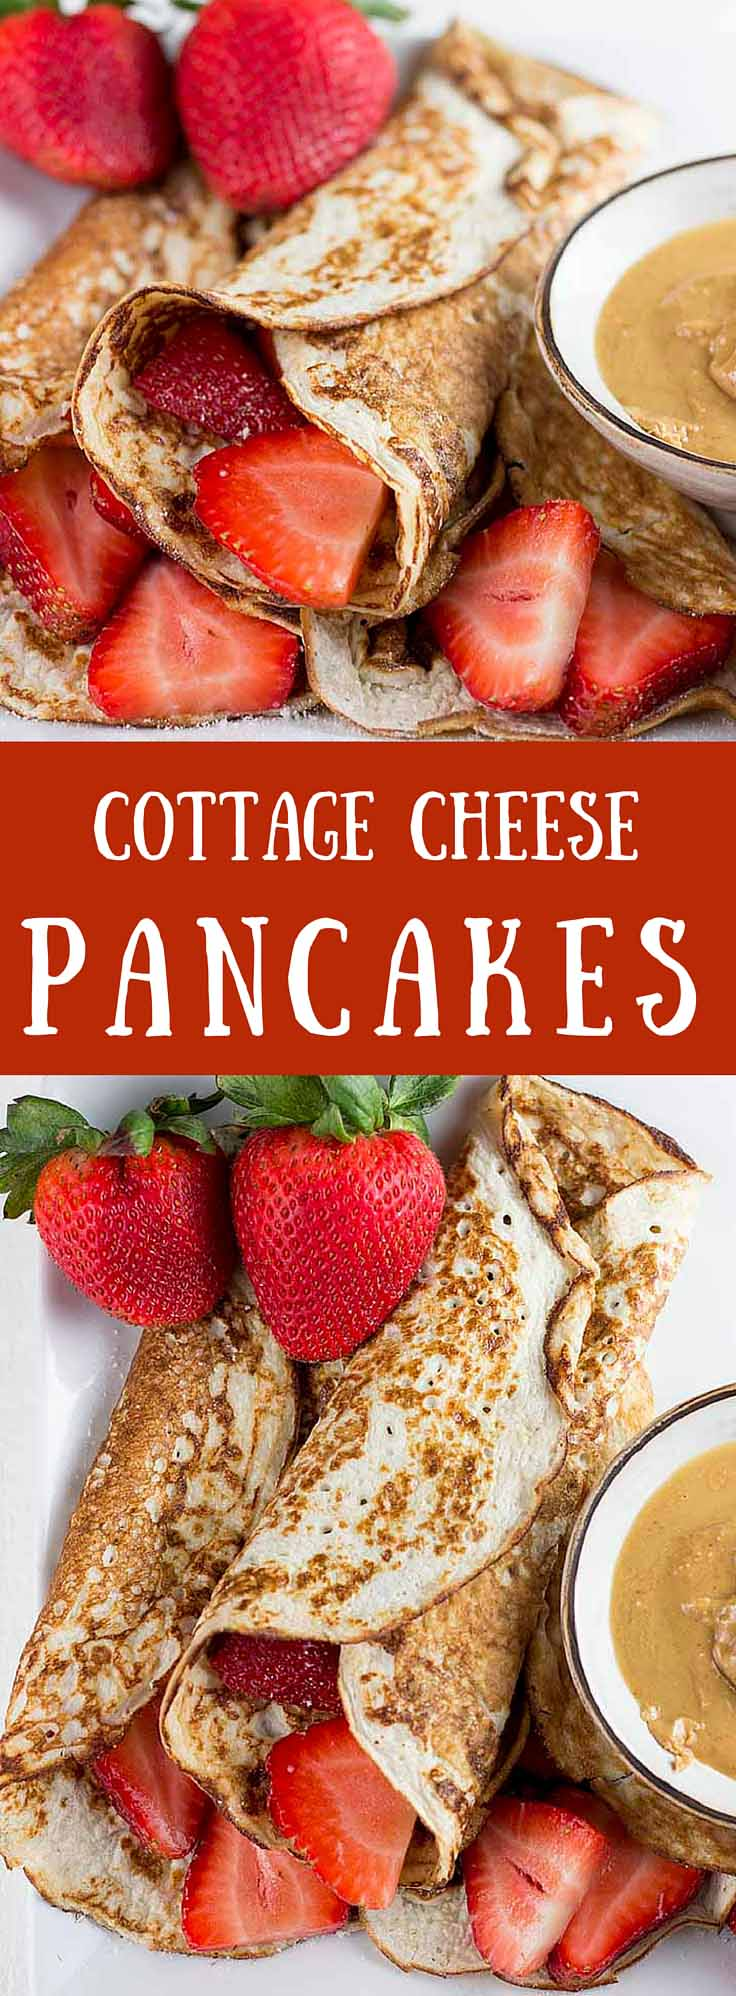 Cottage Cheese Pancakes - With these low-carb, high protein cottage cheese pancakes, you can enjoy America's favorite breakfast without the guilty conscience  | high protein | low carb | sugar free | gluten free | diabetes friendly |